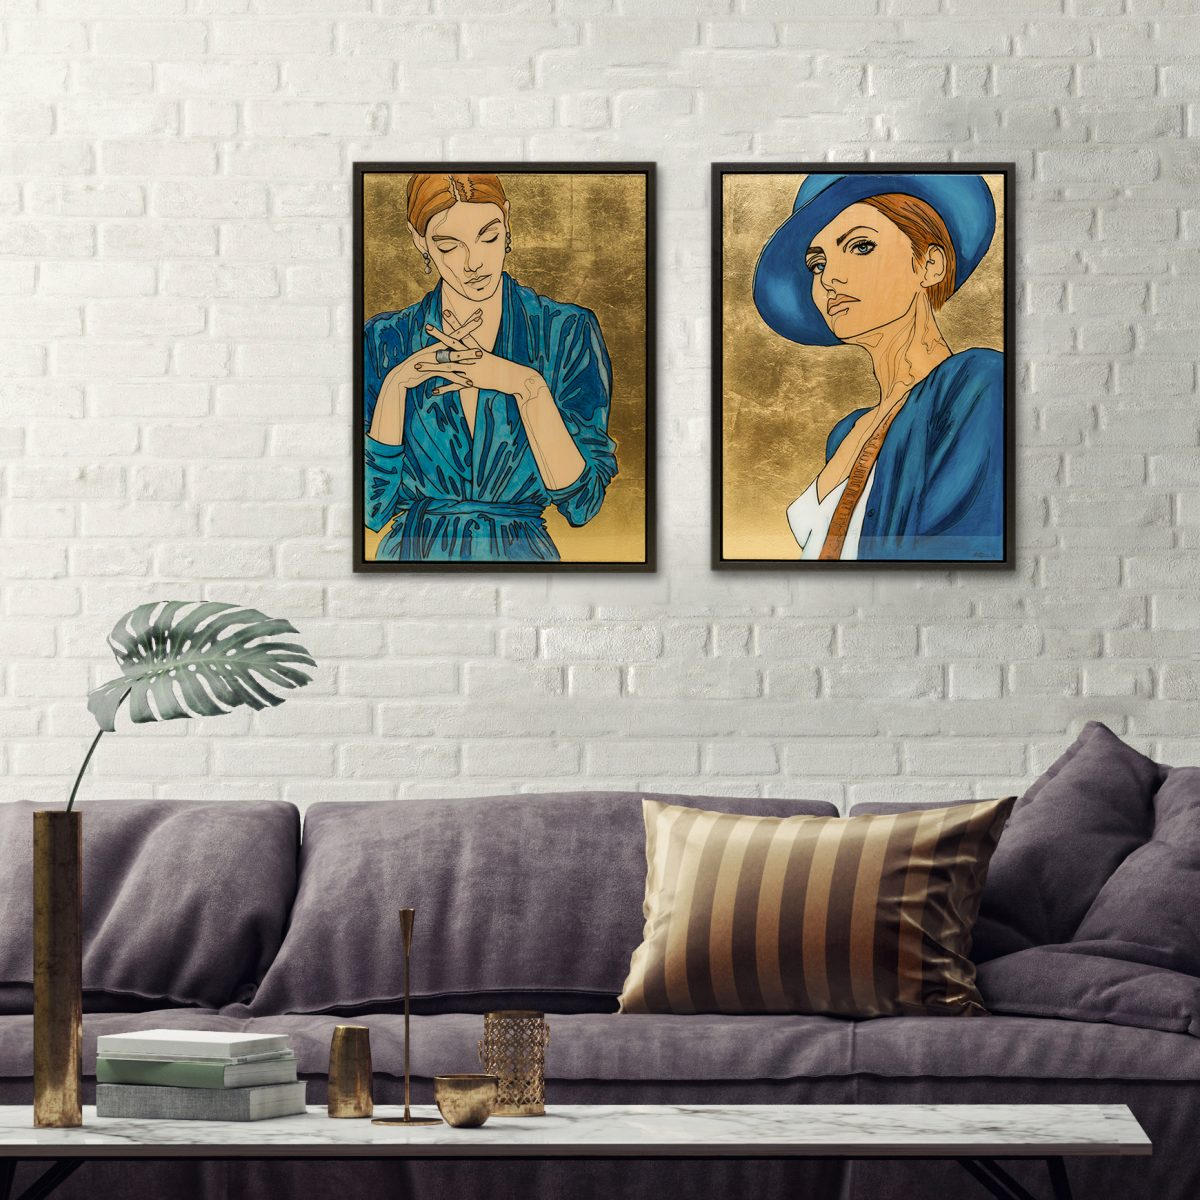 Mixed Media art in an interior